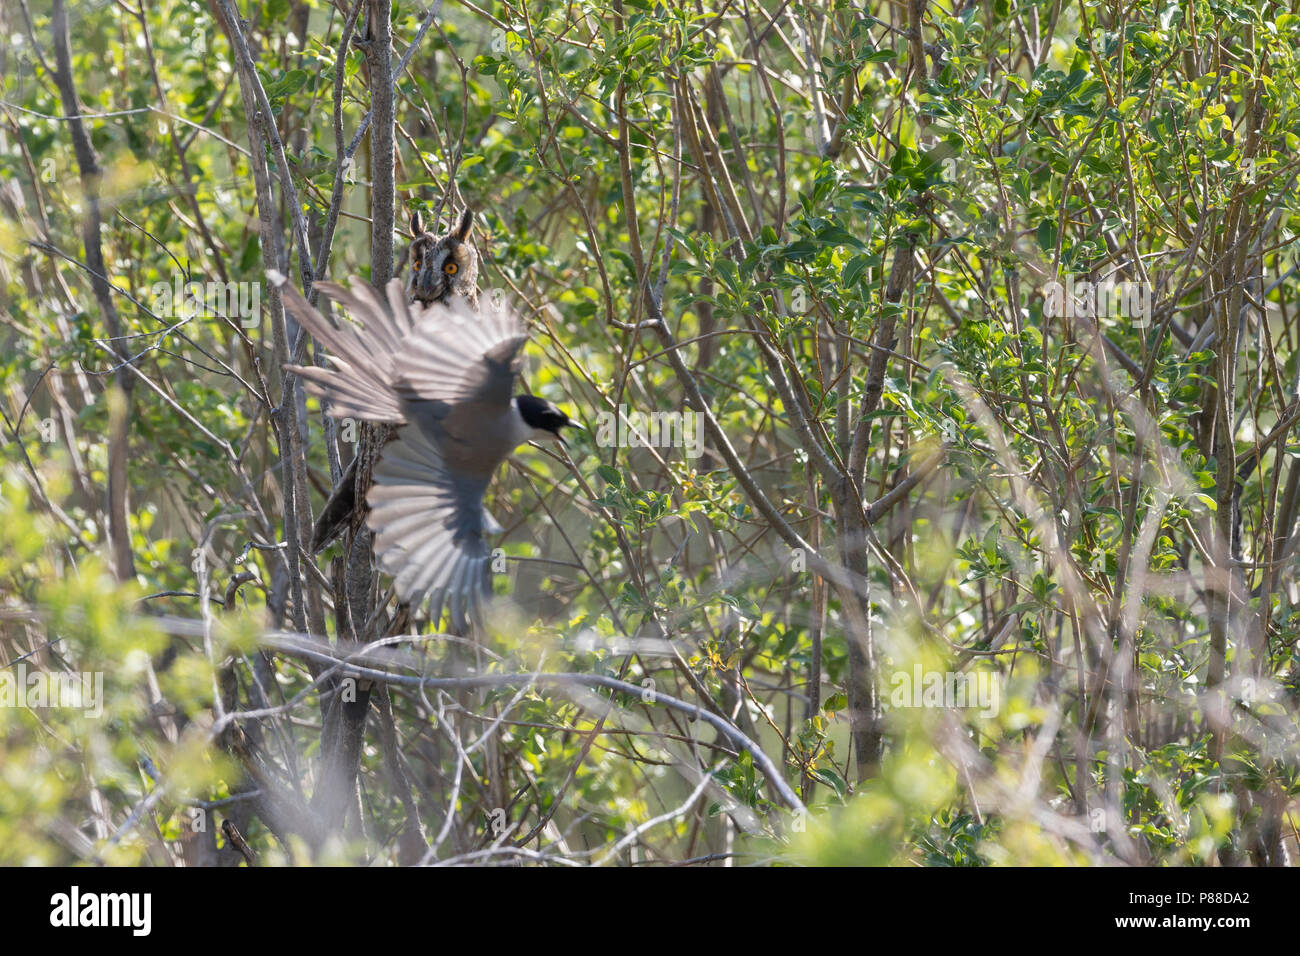 Long-eared Owl - Waldohreule - Asio otus otus, Russia (Baikal), adult, attacked by Asian Blue Magpie Stock Photo